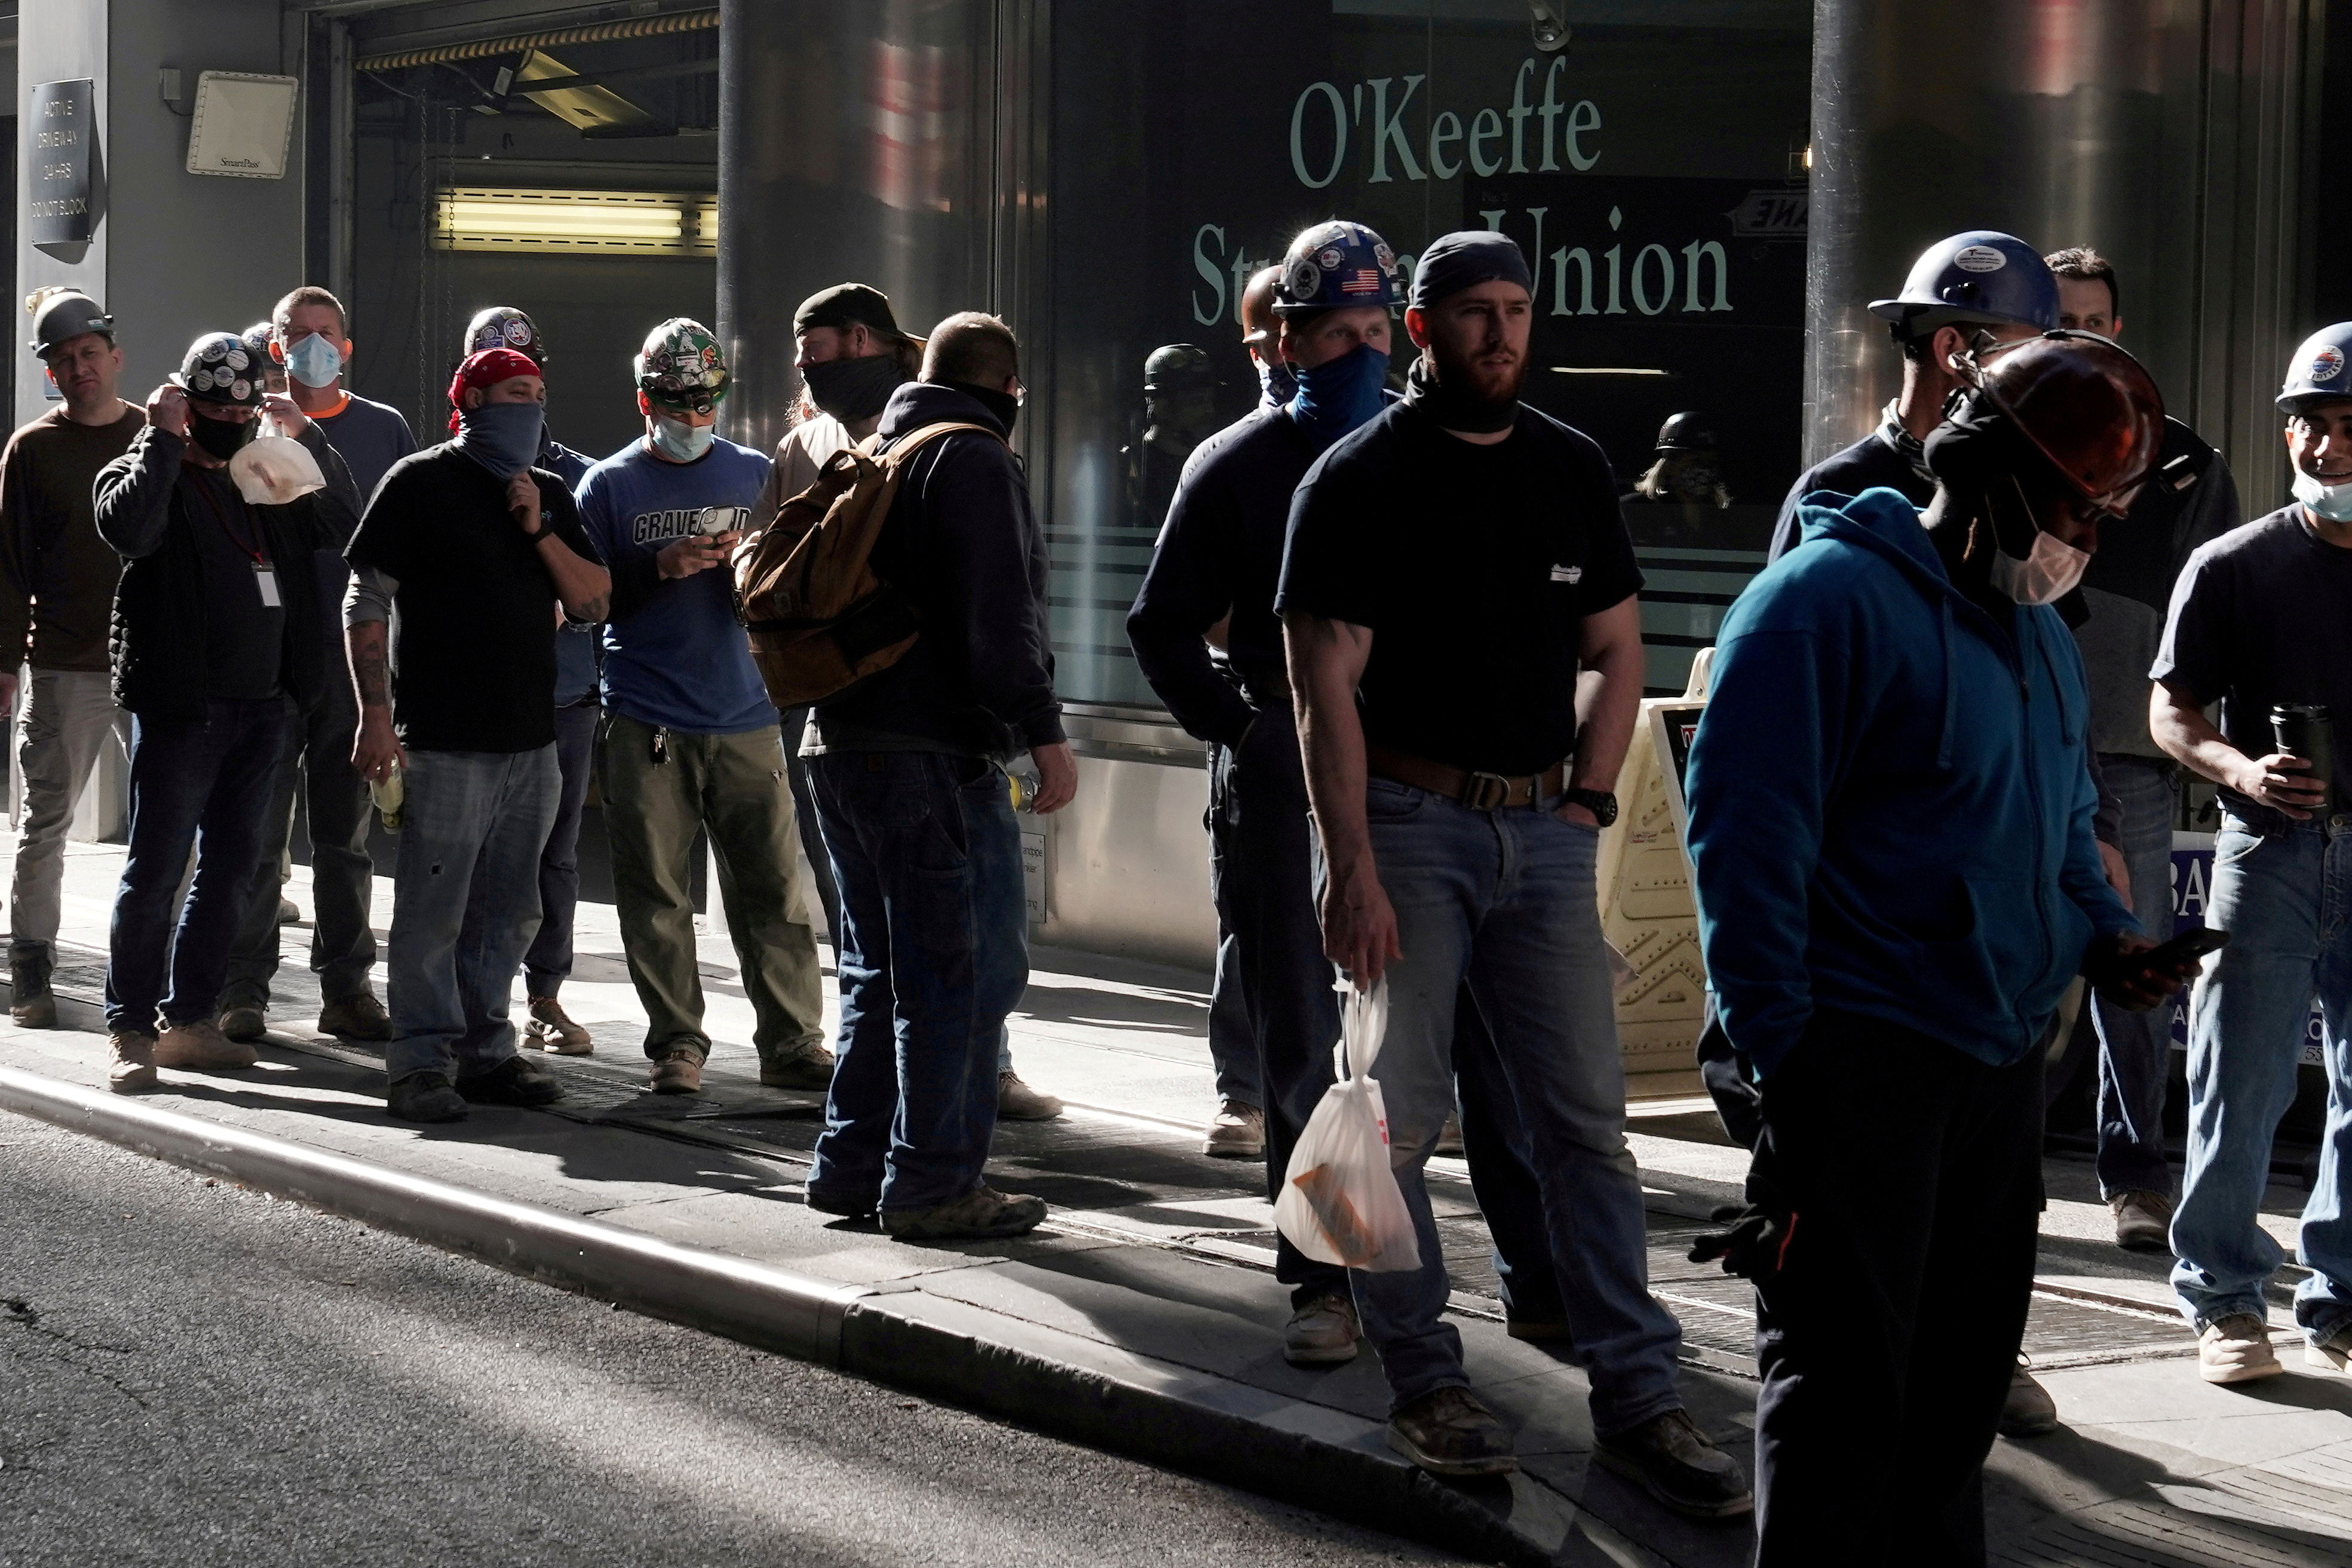 Construction workers wait in line to do a temperature test to return to the job site after lunch, amid the coronavirus disease (COVID-19) outbreak, in the Manhattan borough of New York City, New York, U.S., November 10, 2020. REUTERS/Carlo Allegri/File Photo